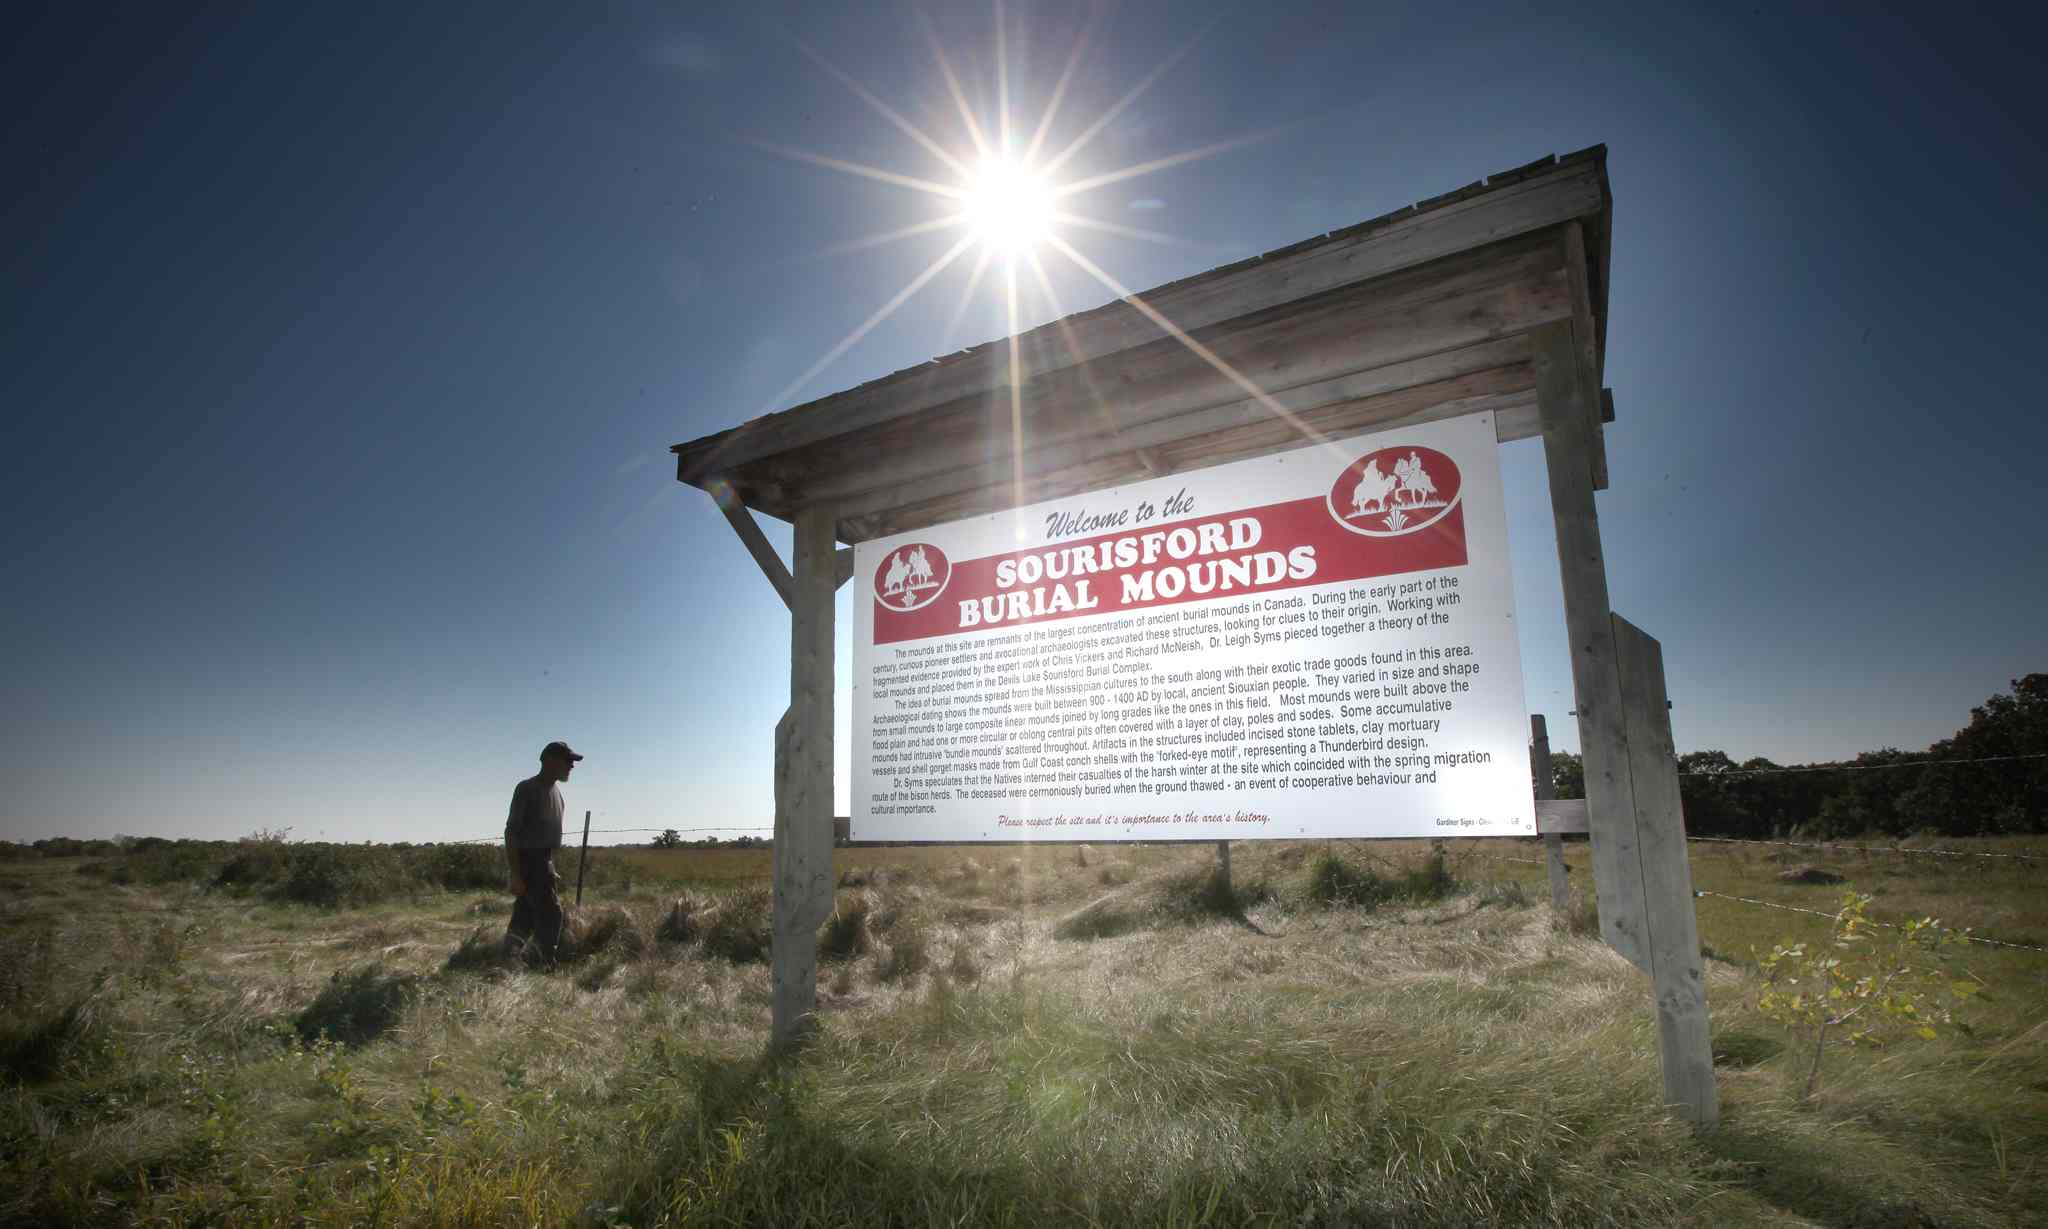 This contentious sign outside Linear Mounds may be removed. Dakota object to the label 'Burial Mounds.'